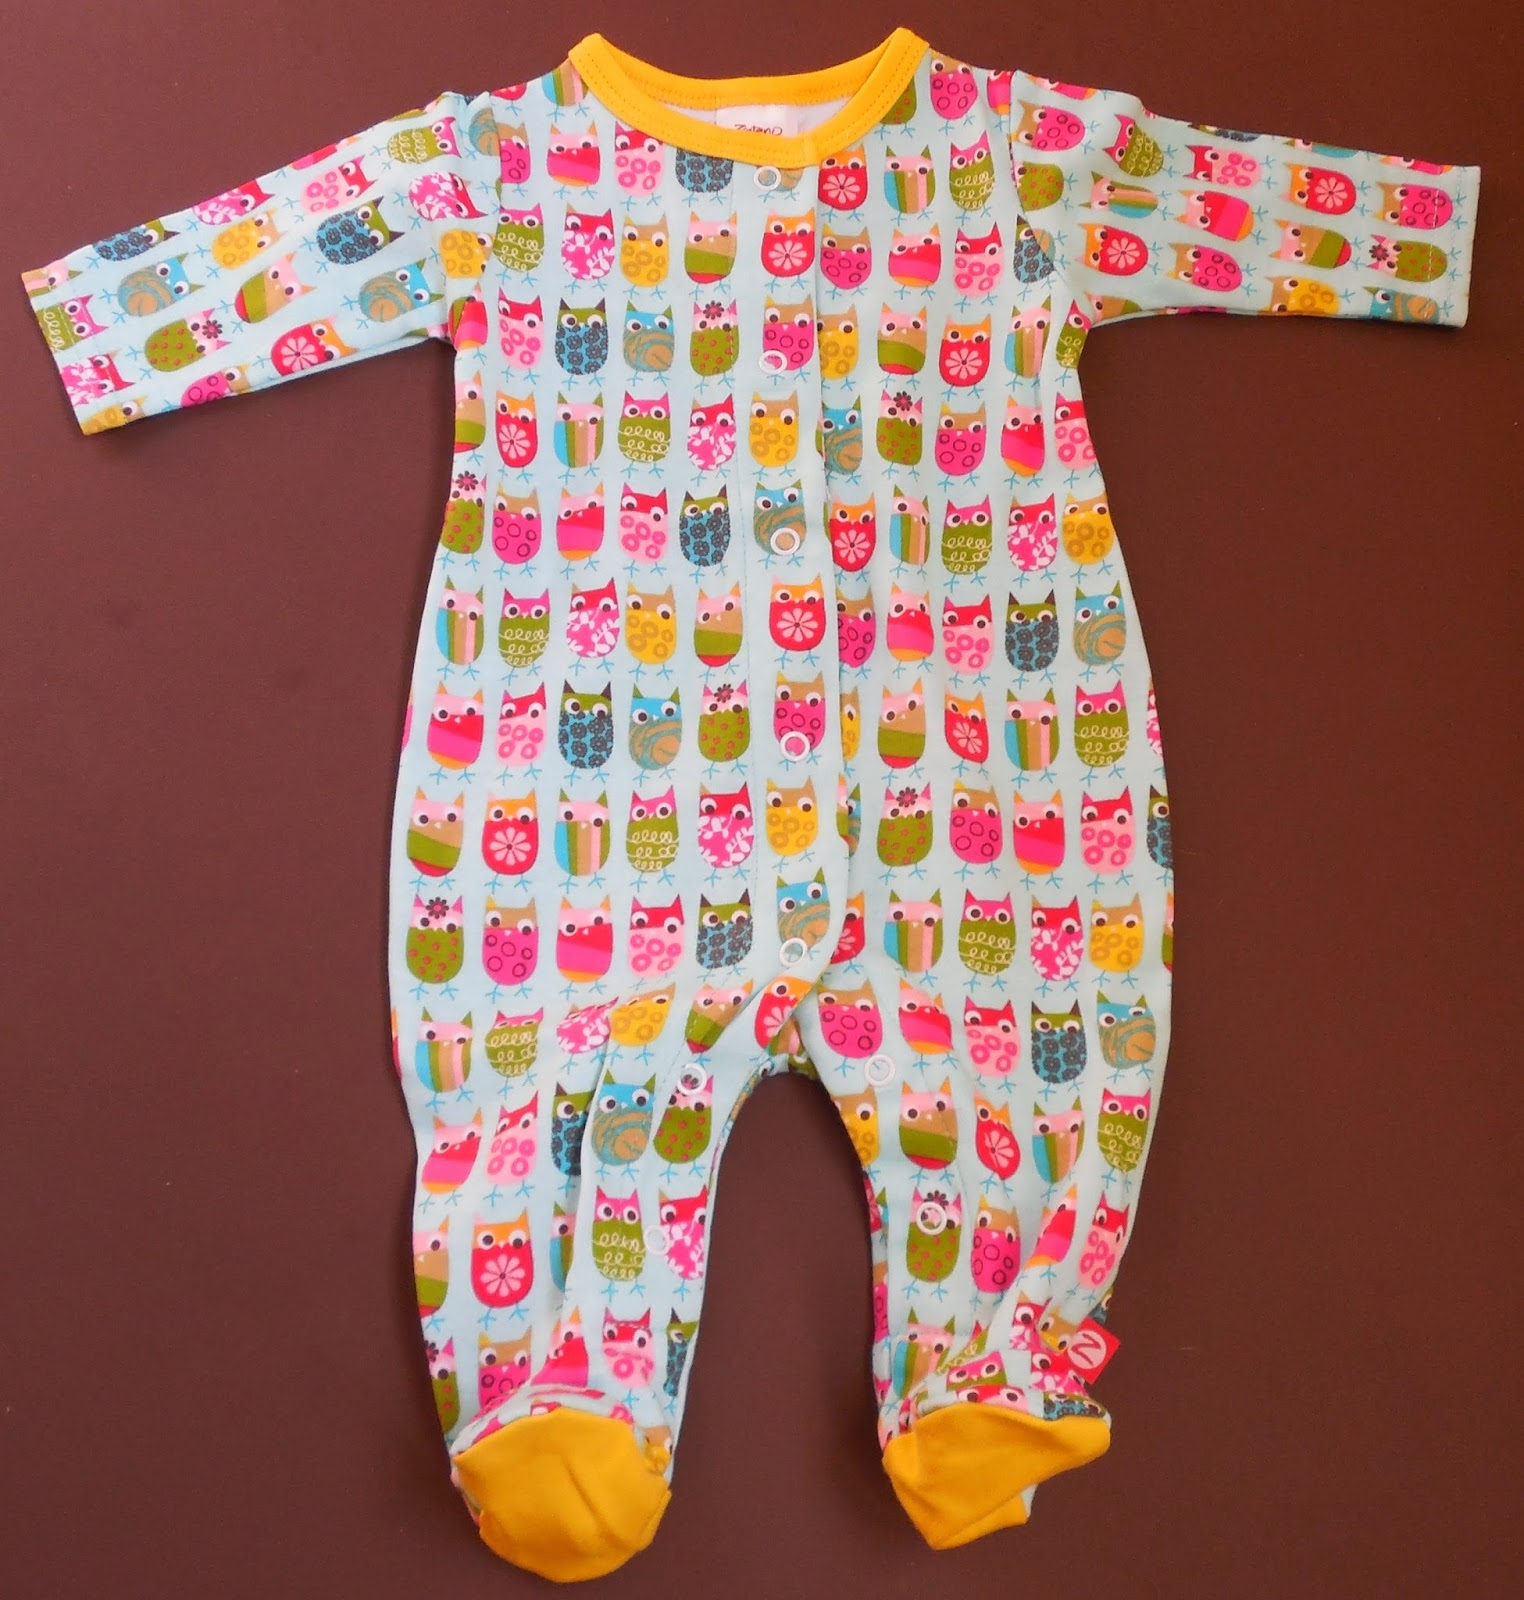 Zutano Baby Clothing